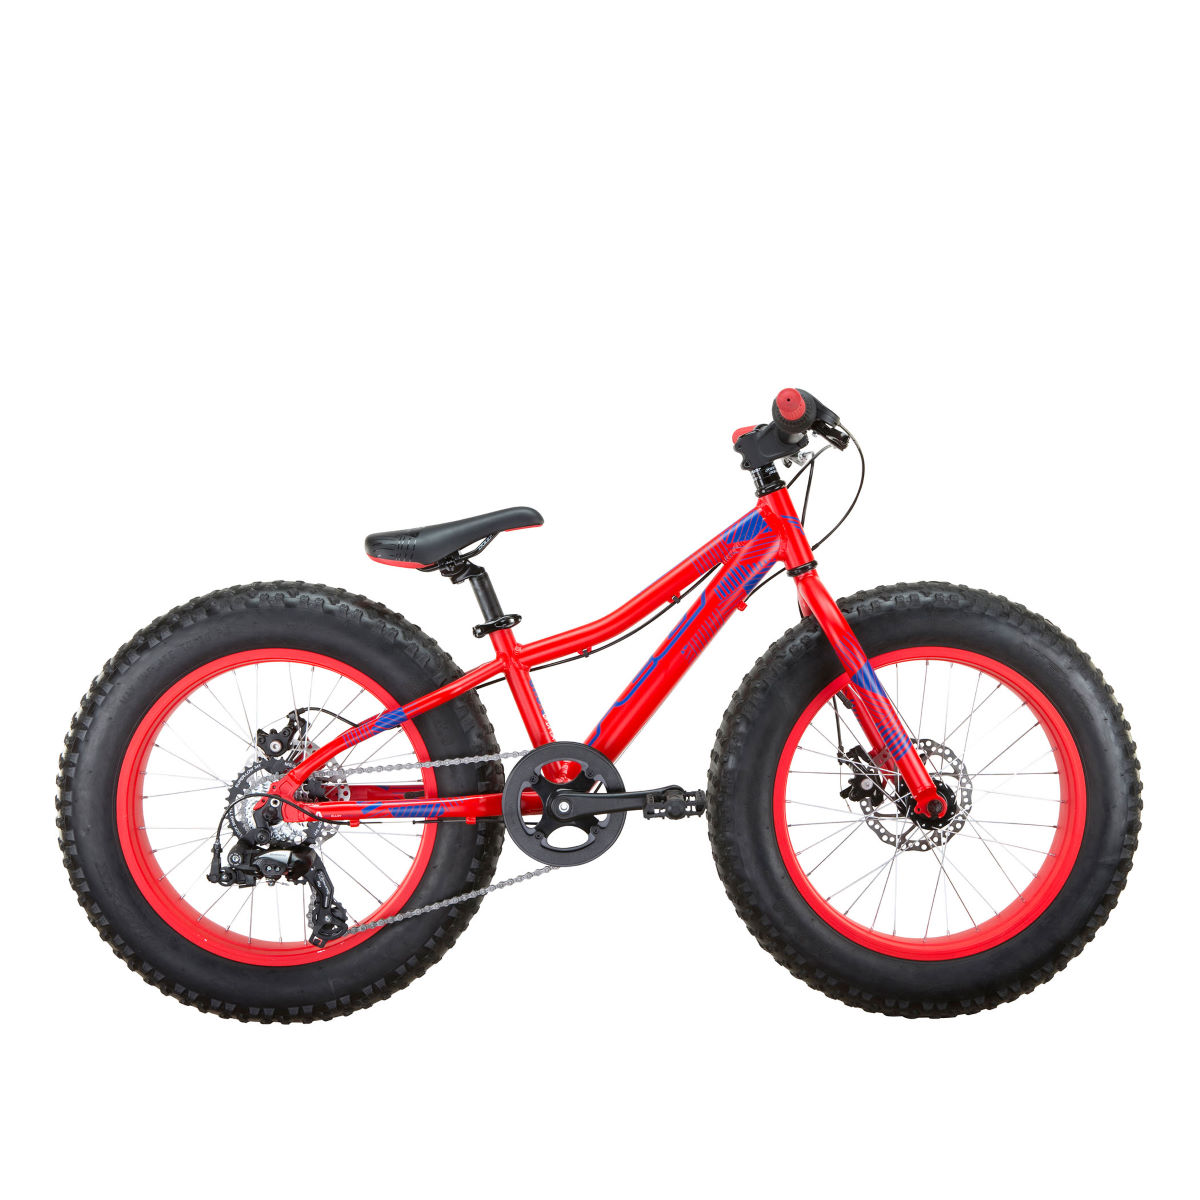 VTT Fat Bike Enfant Felt Cruncher 20 (2017) - 20'' Wheel Stock Bike Matte Fluro Red Vélos enfant - 7 ans et plus